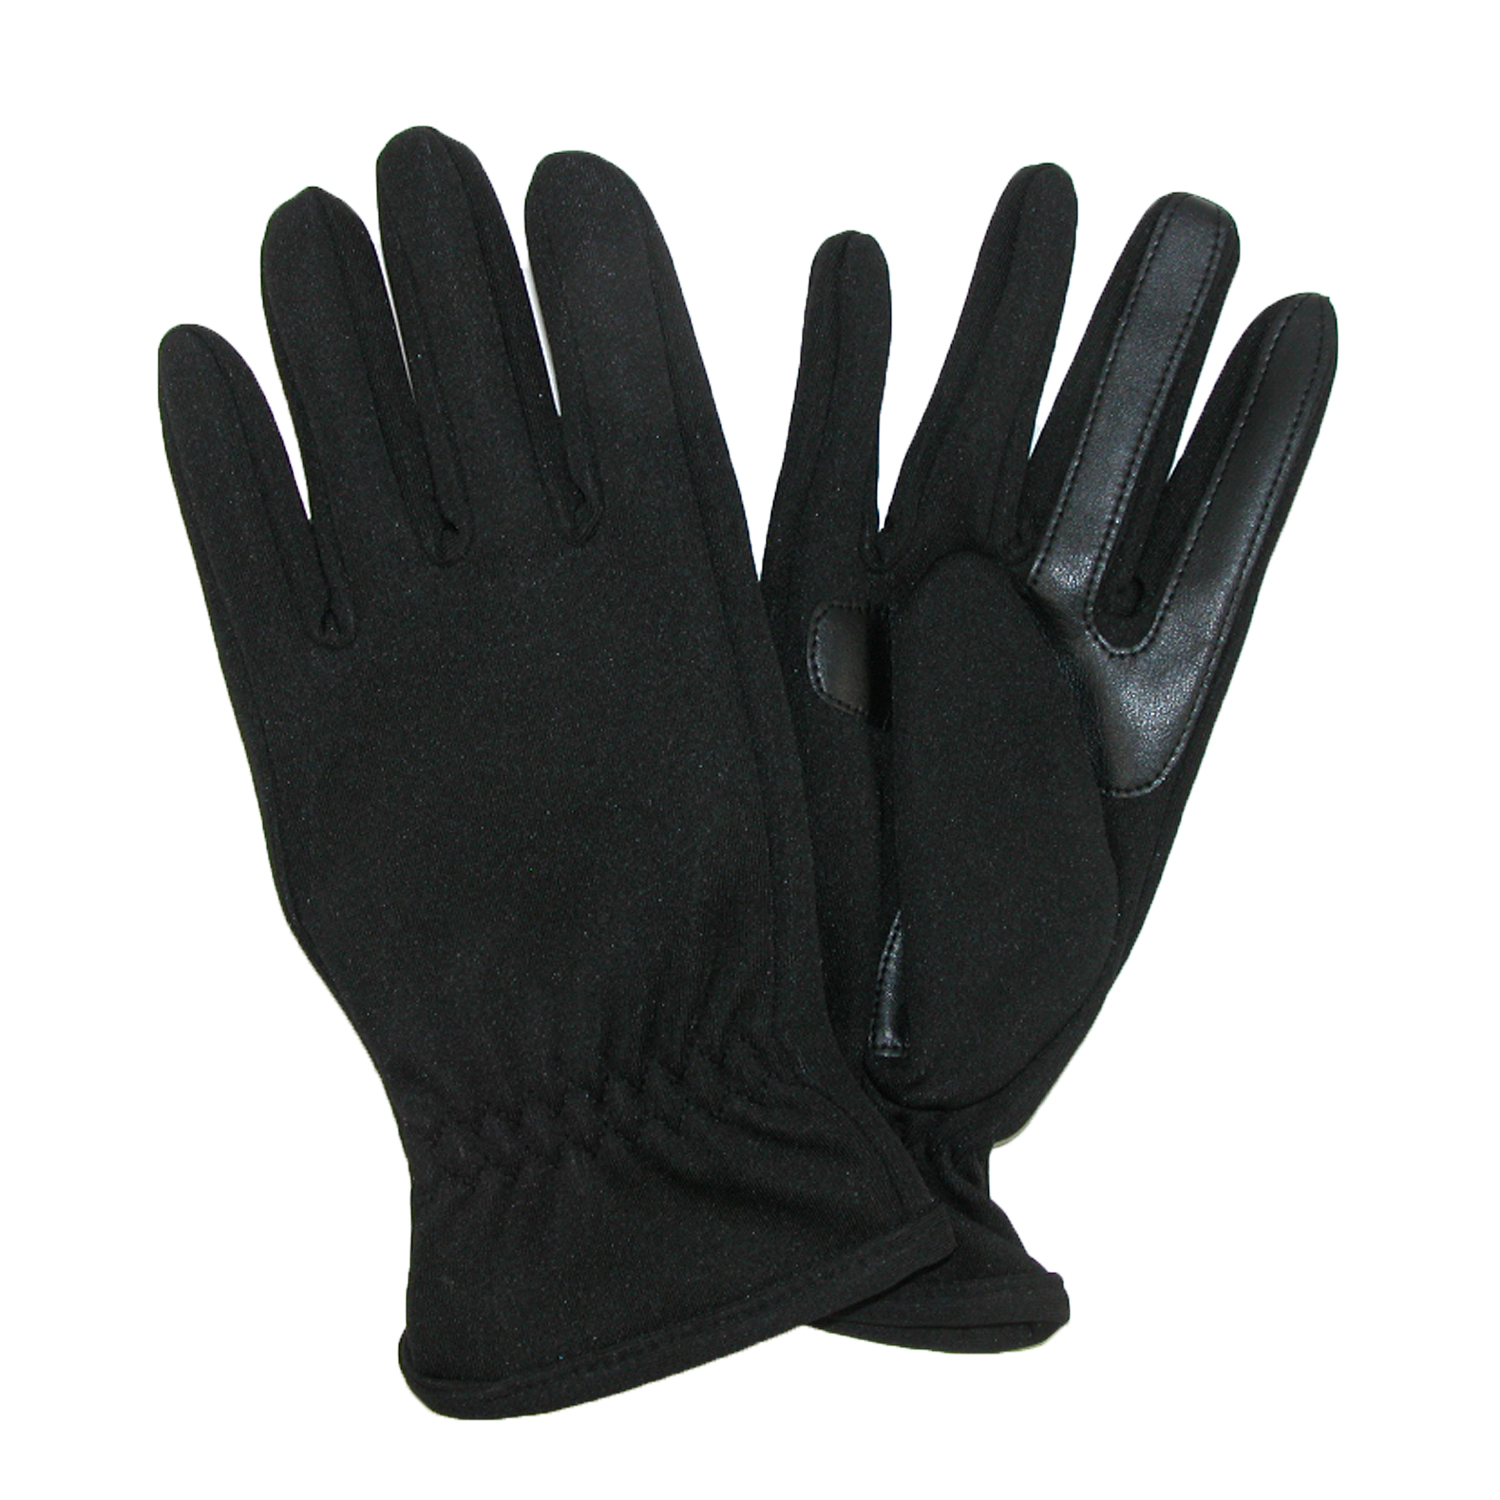 totes ISOTONER Size Xlarge Mens Unlined SmarTouch Stretch Glove, Black